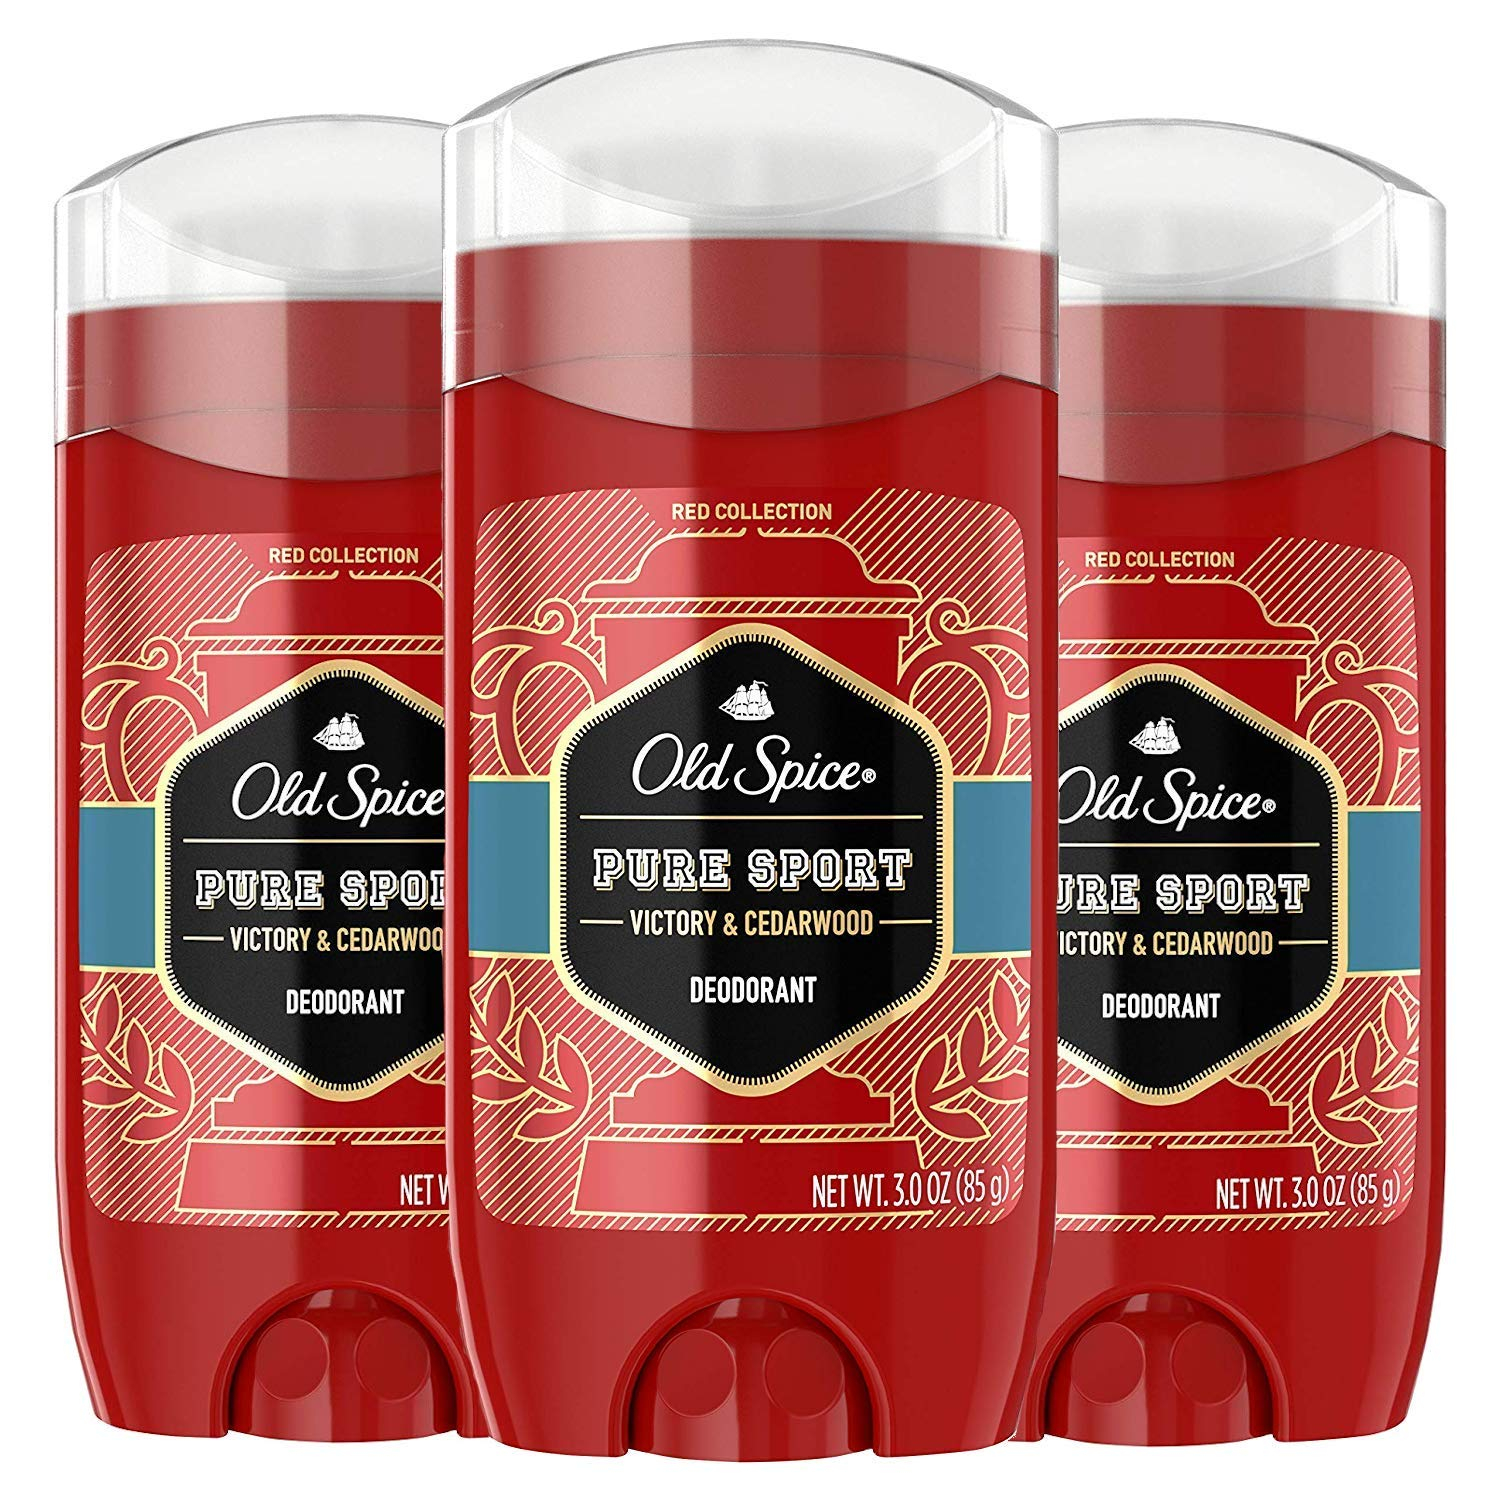 3 Pack Old Spice Red Collection 48-Hour Deodorant -Pure Sport 3oz